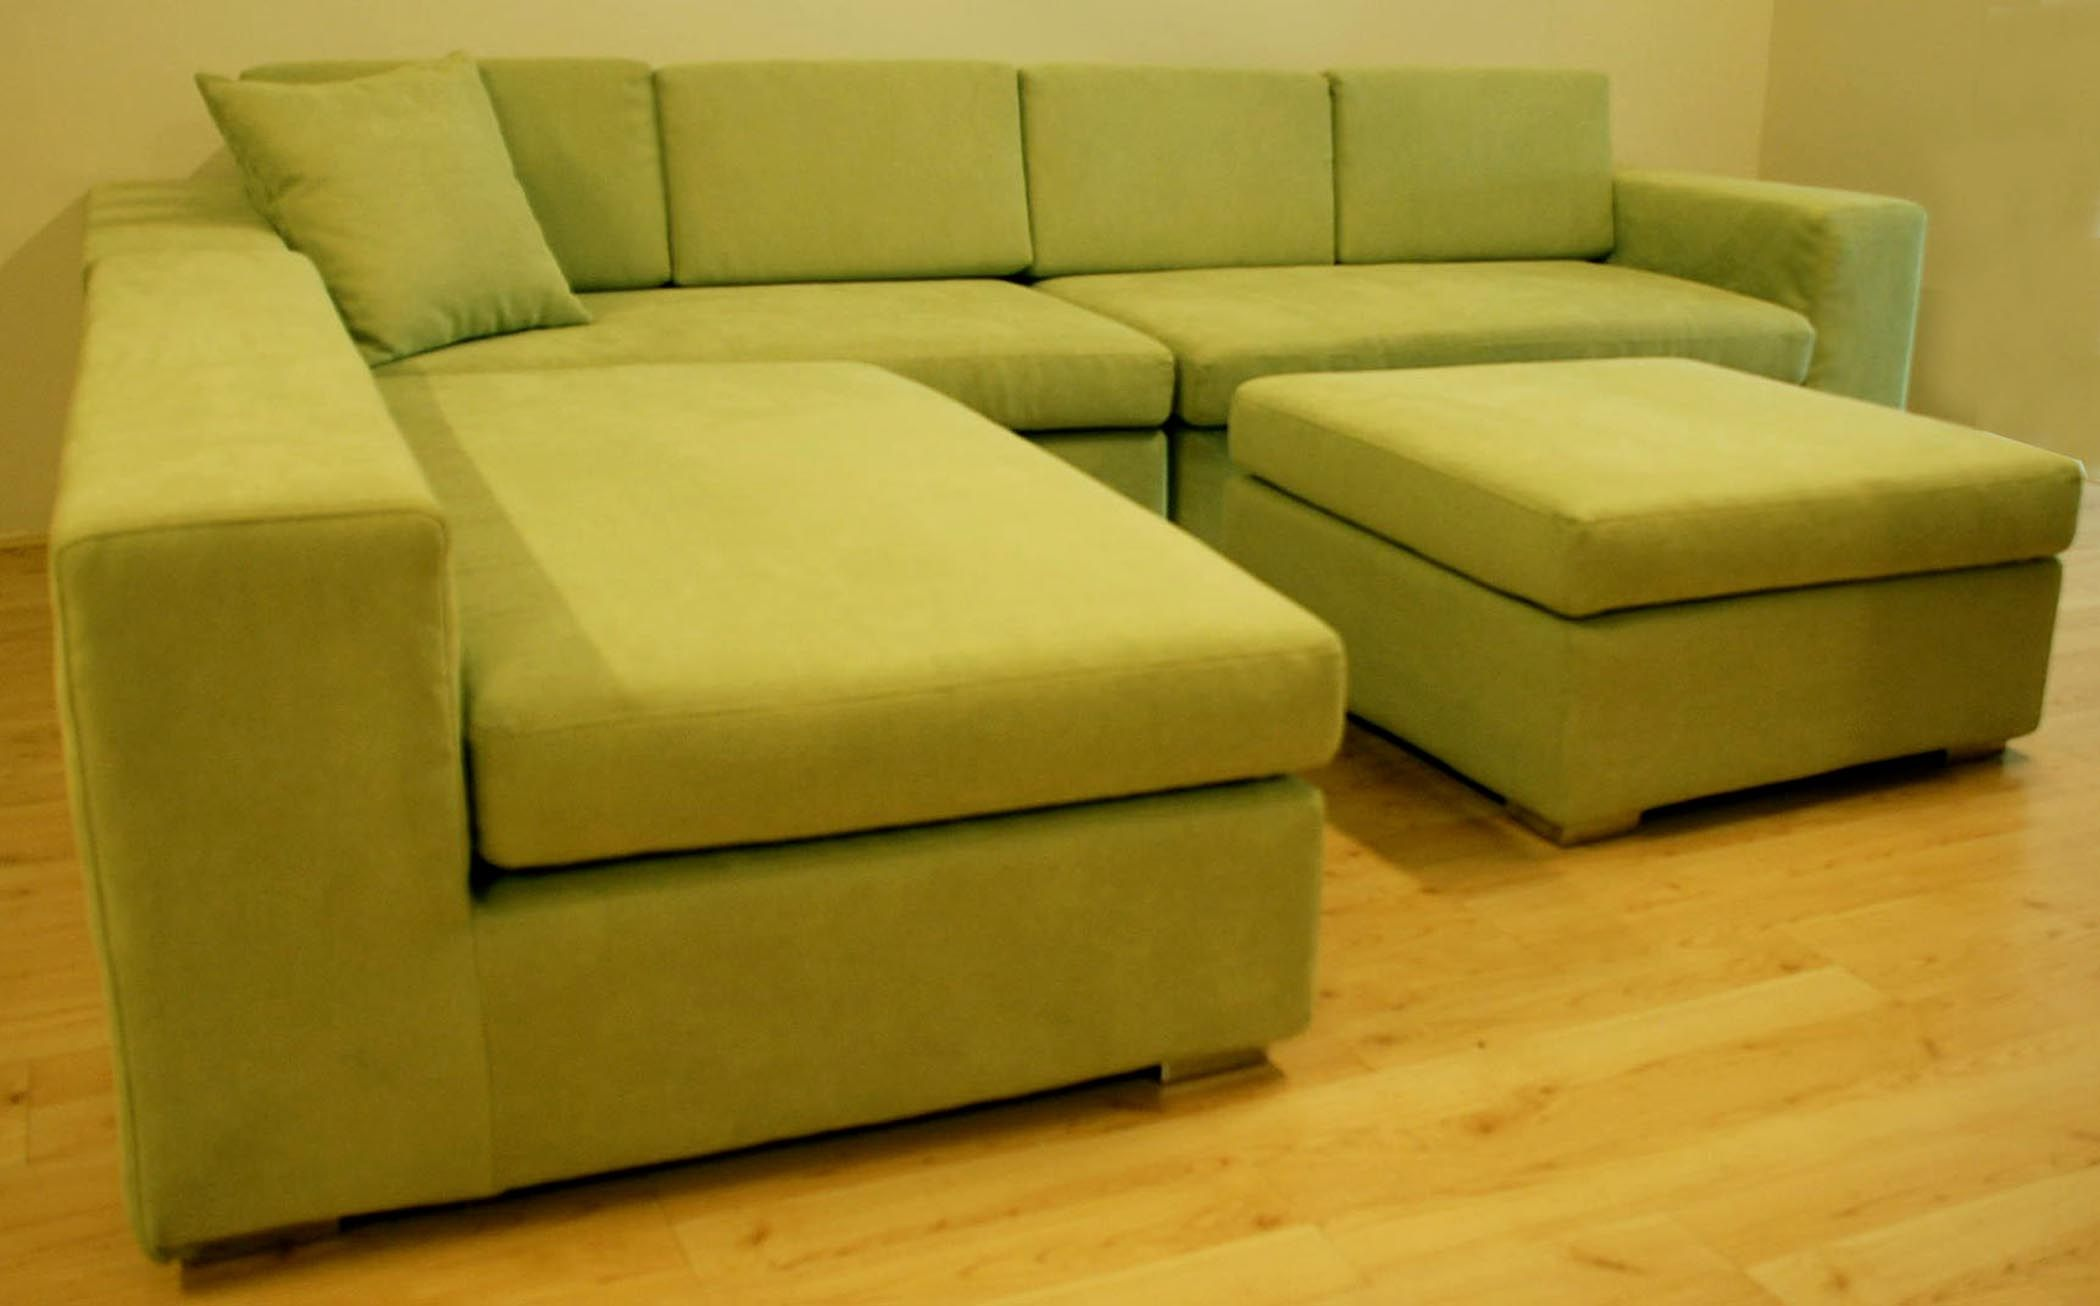 Lime Green Leather Sectional Sofa Modern Sofa Sectional Green Leather Sofa Yellow Leather Sofas